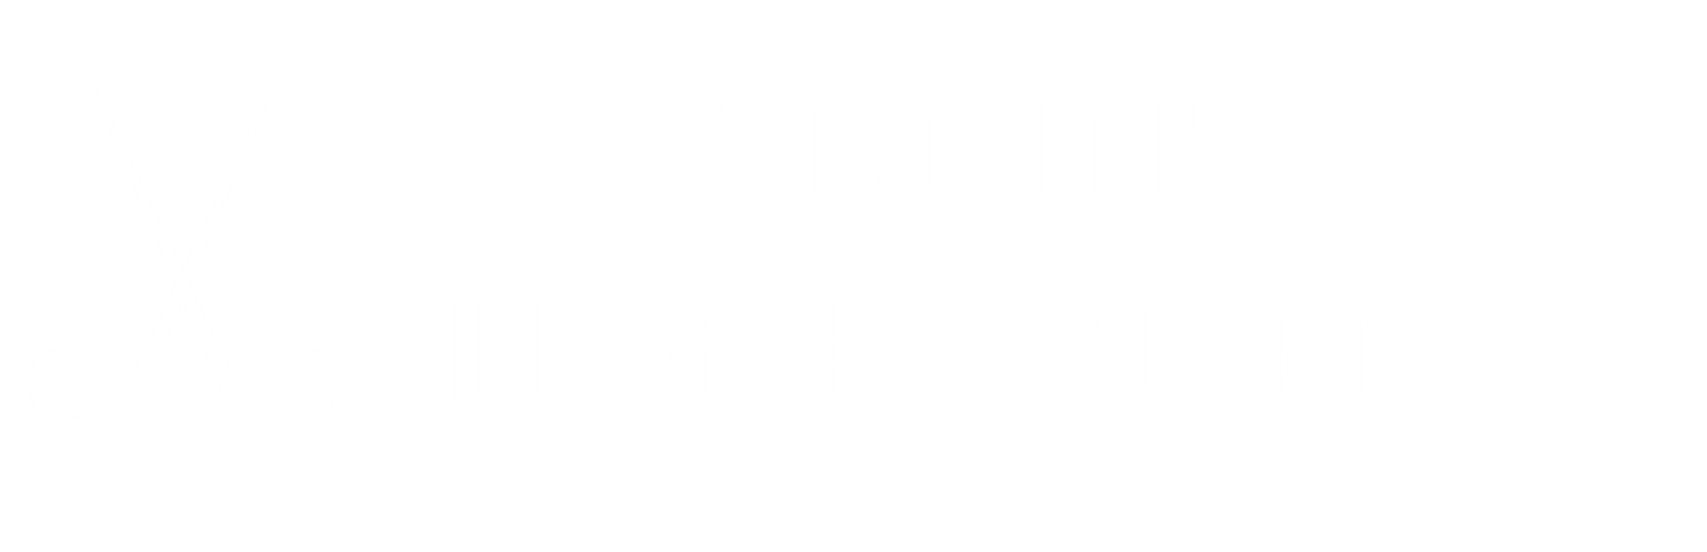 Club de Golf Cuéllar